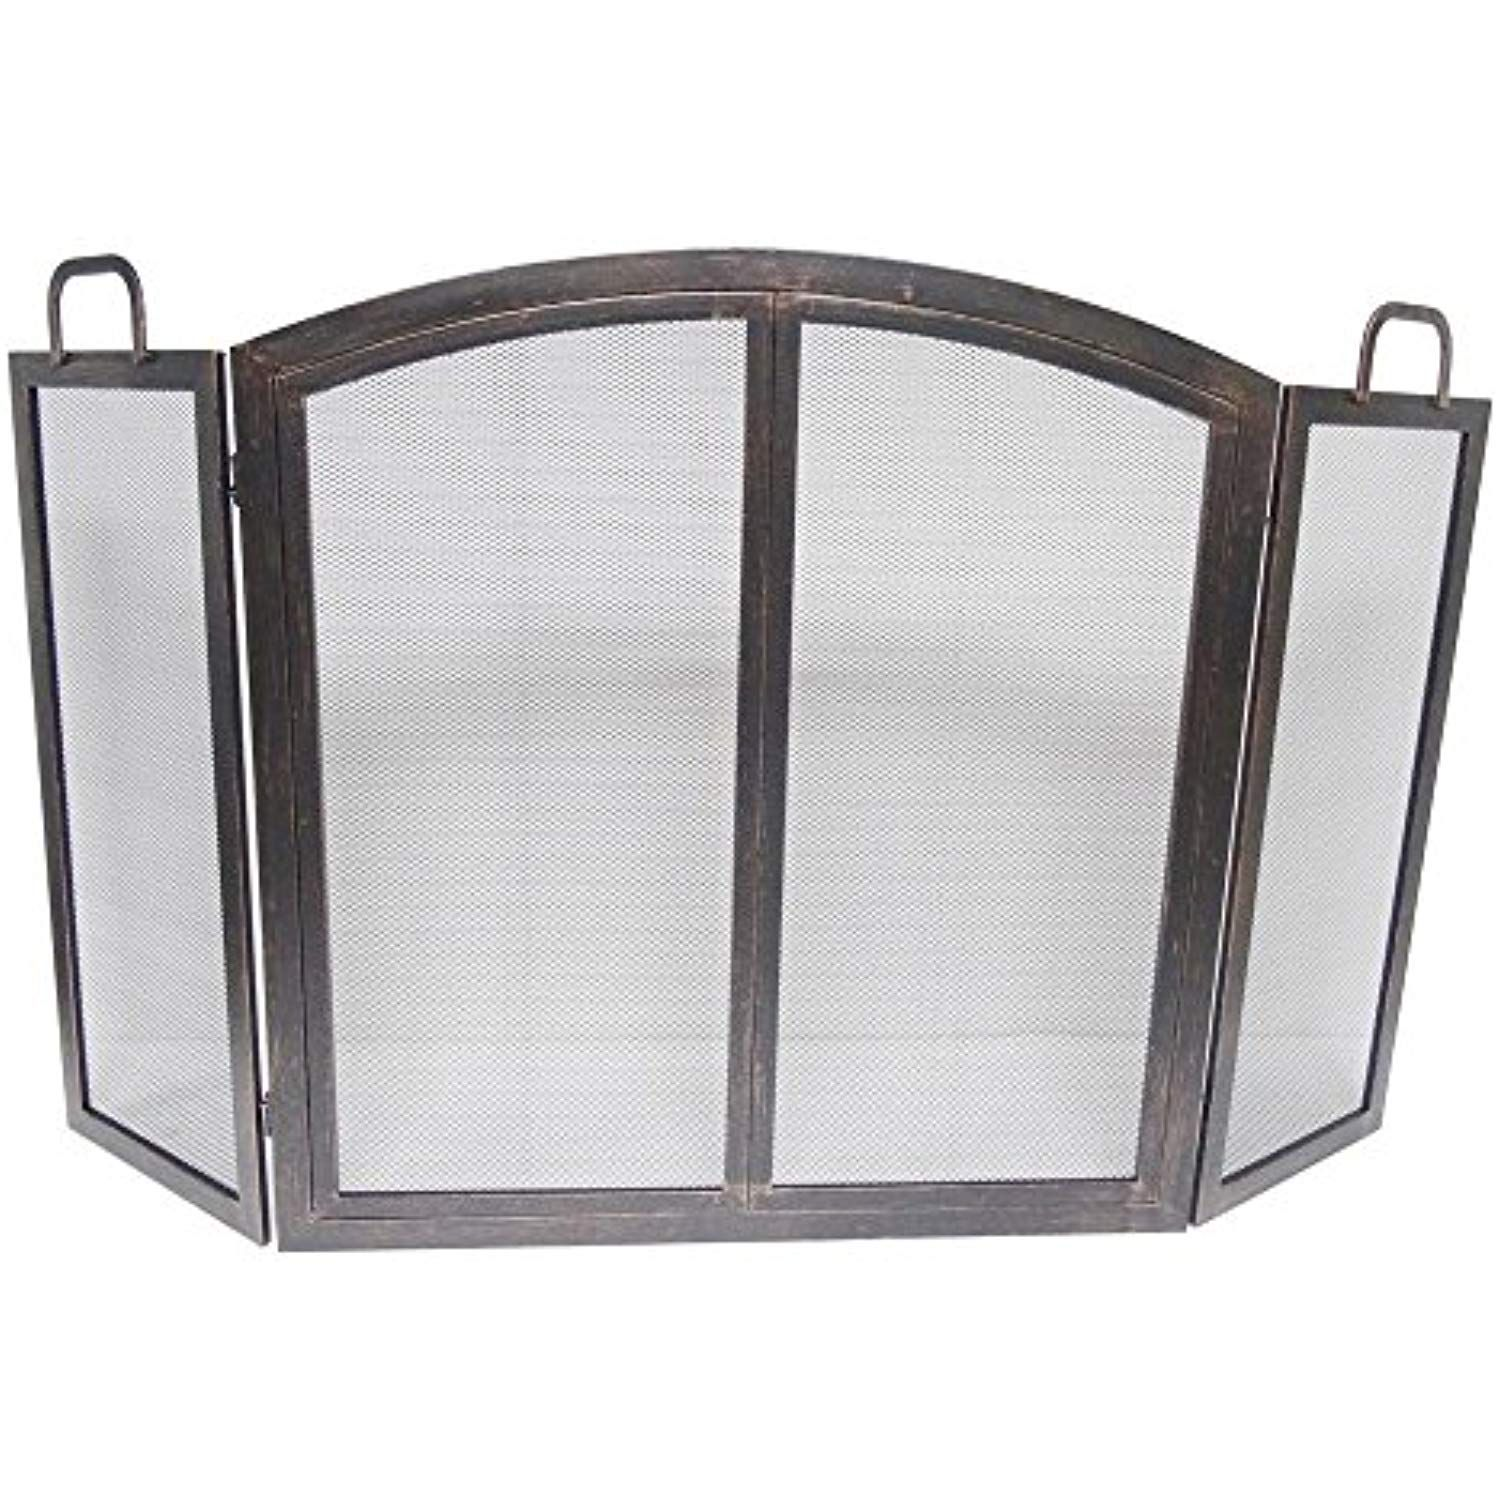 Pilgrim Fireplace Screens Elegant Home Decorators Collection Oil Rubbed Bronze 55 In Brixton